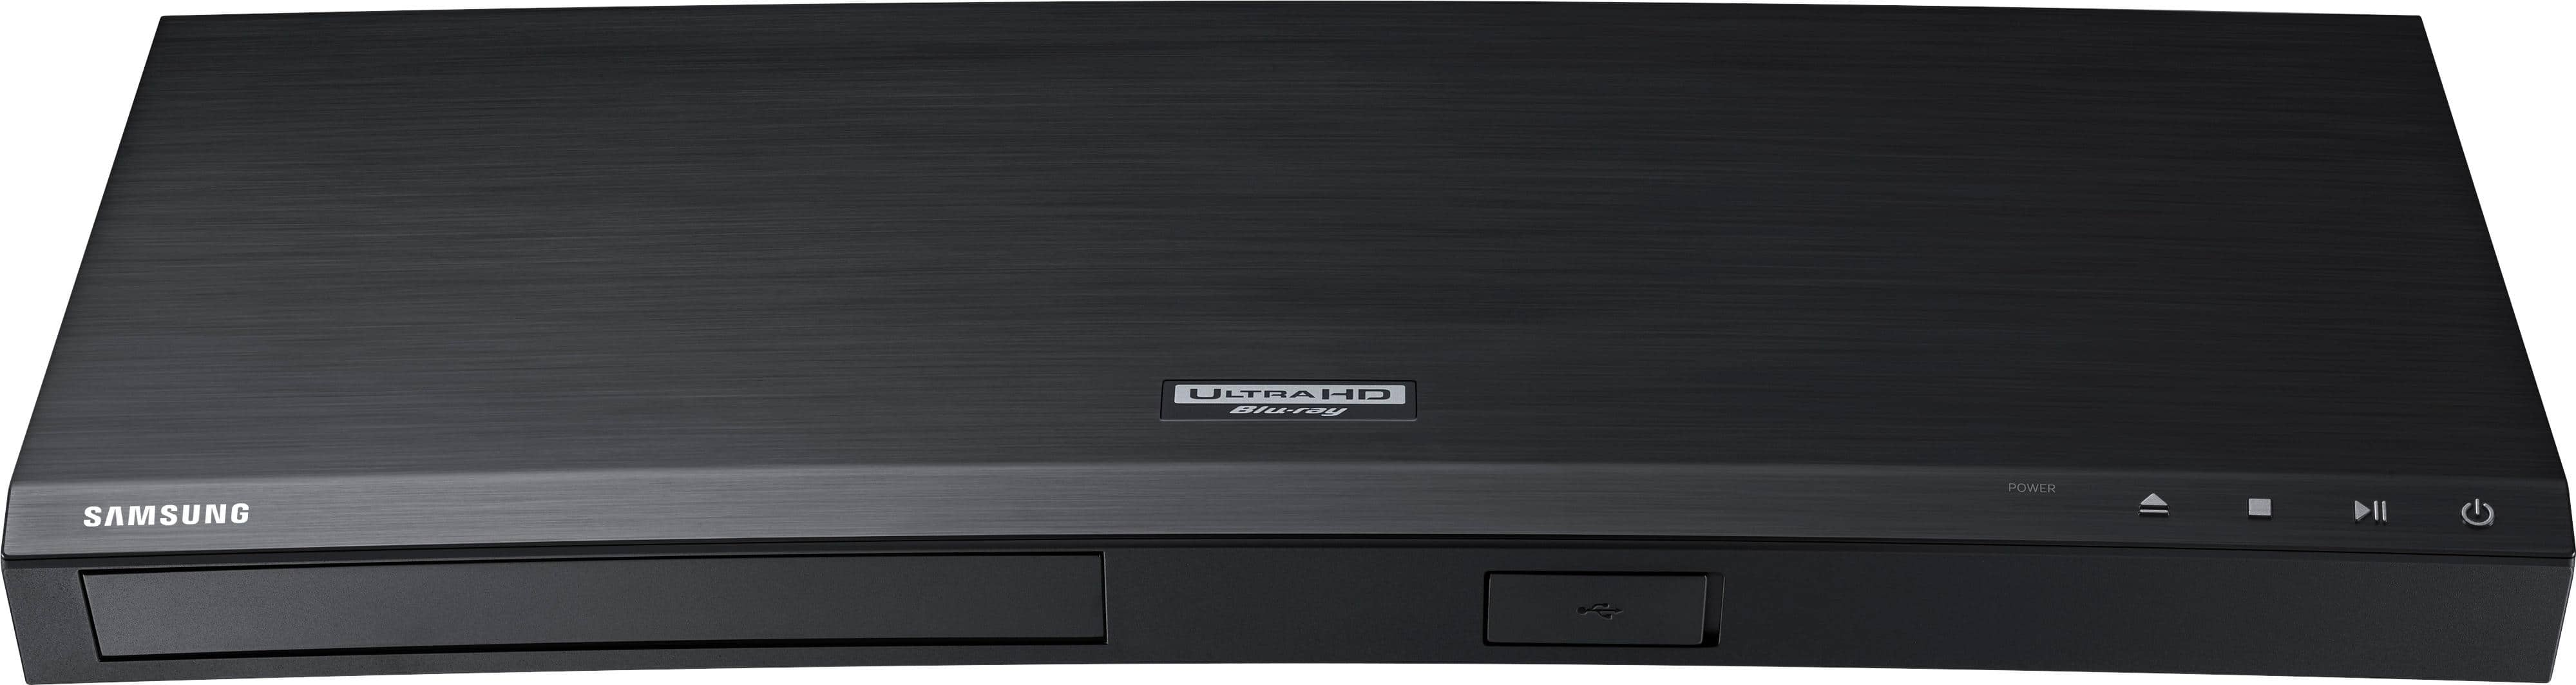 Samsung Streaming 4K Ultra HD Audio Wi-Fi Built-In Blu-ray Player Black UBD-M8500/ZA - Best Buy $170